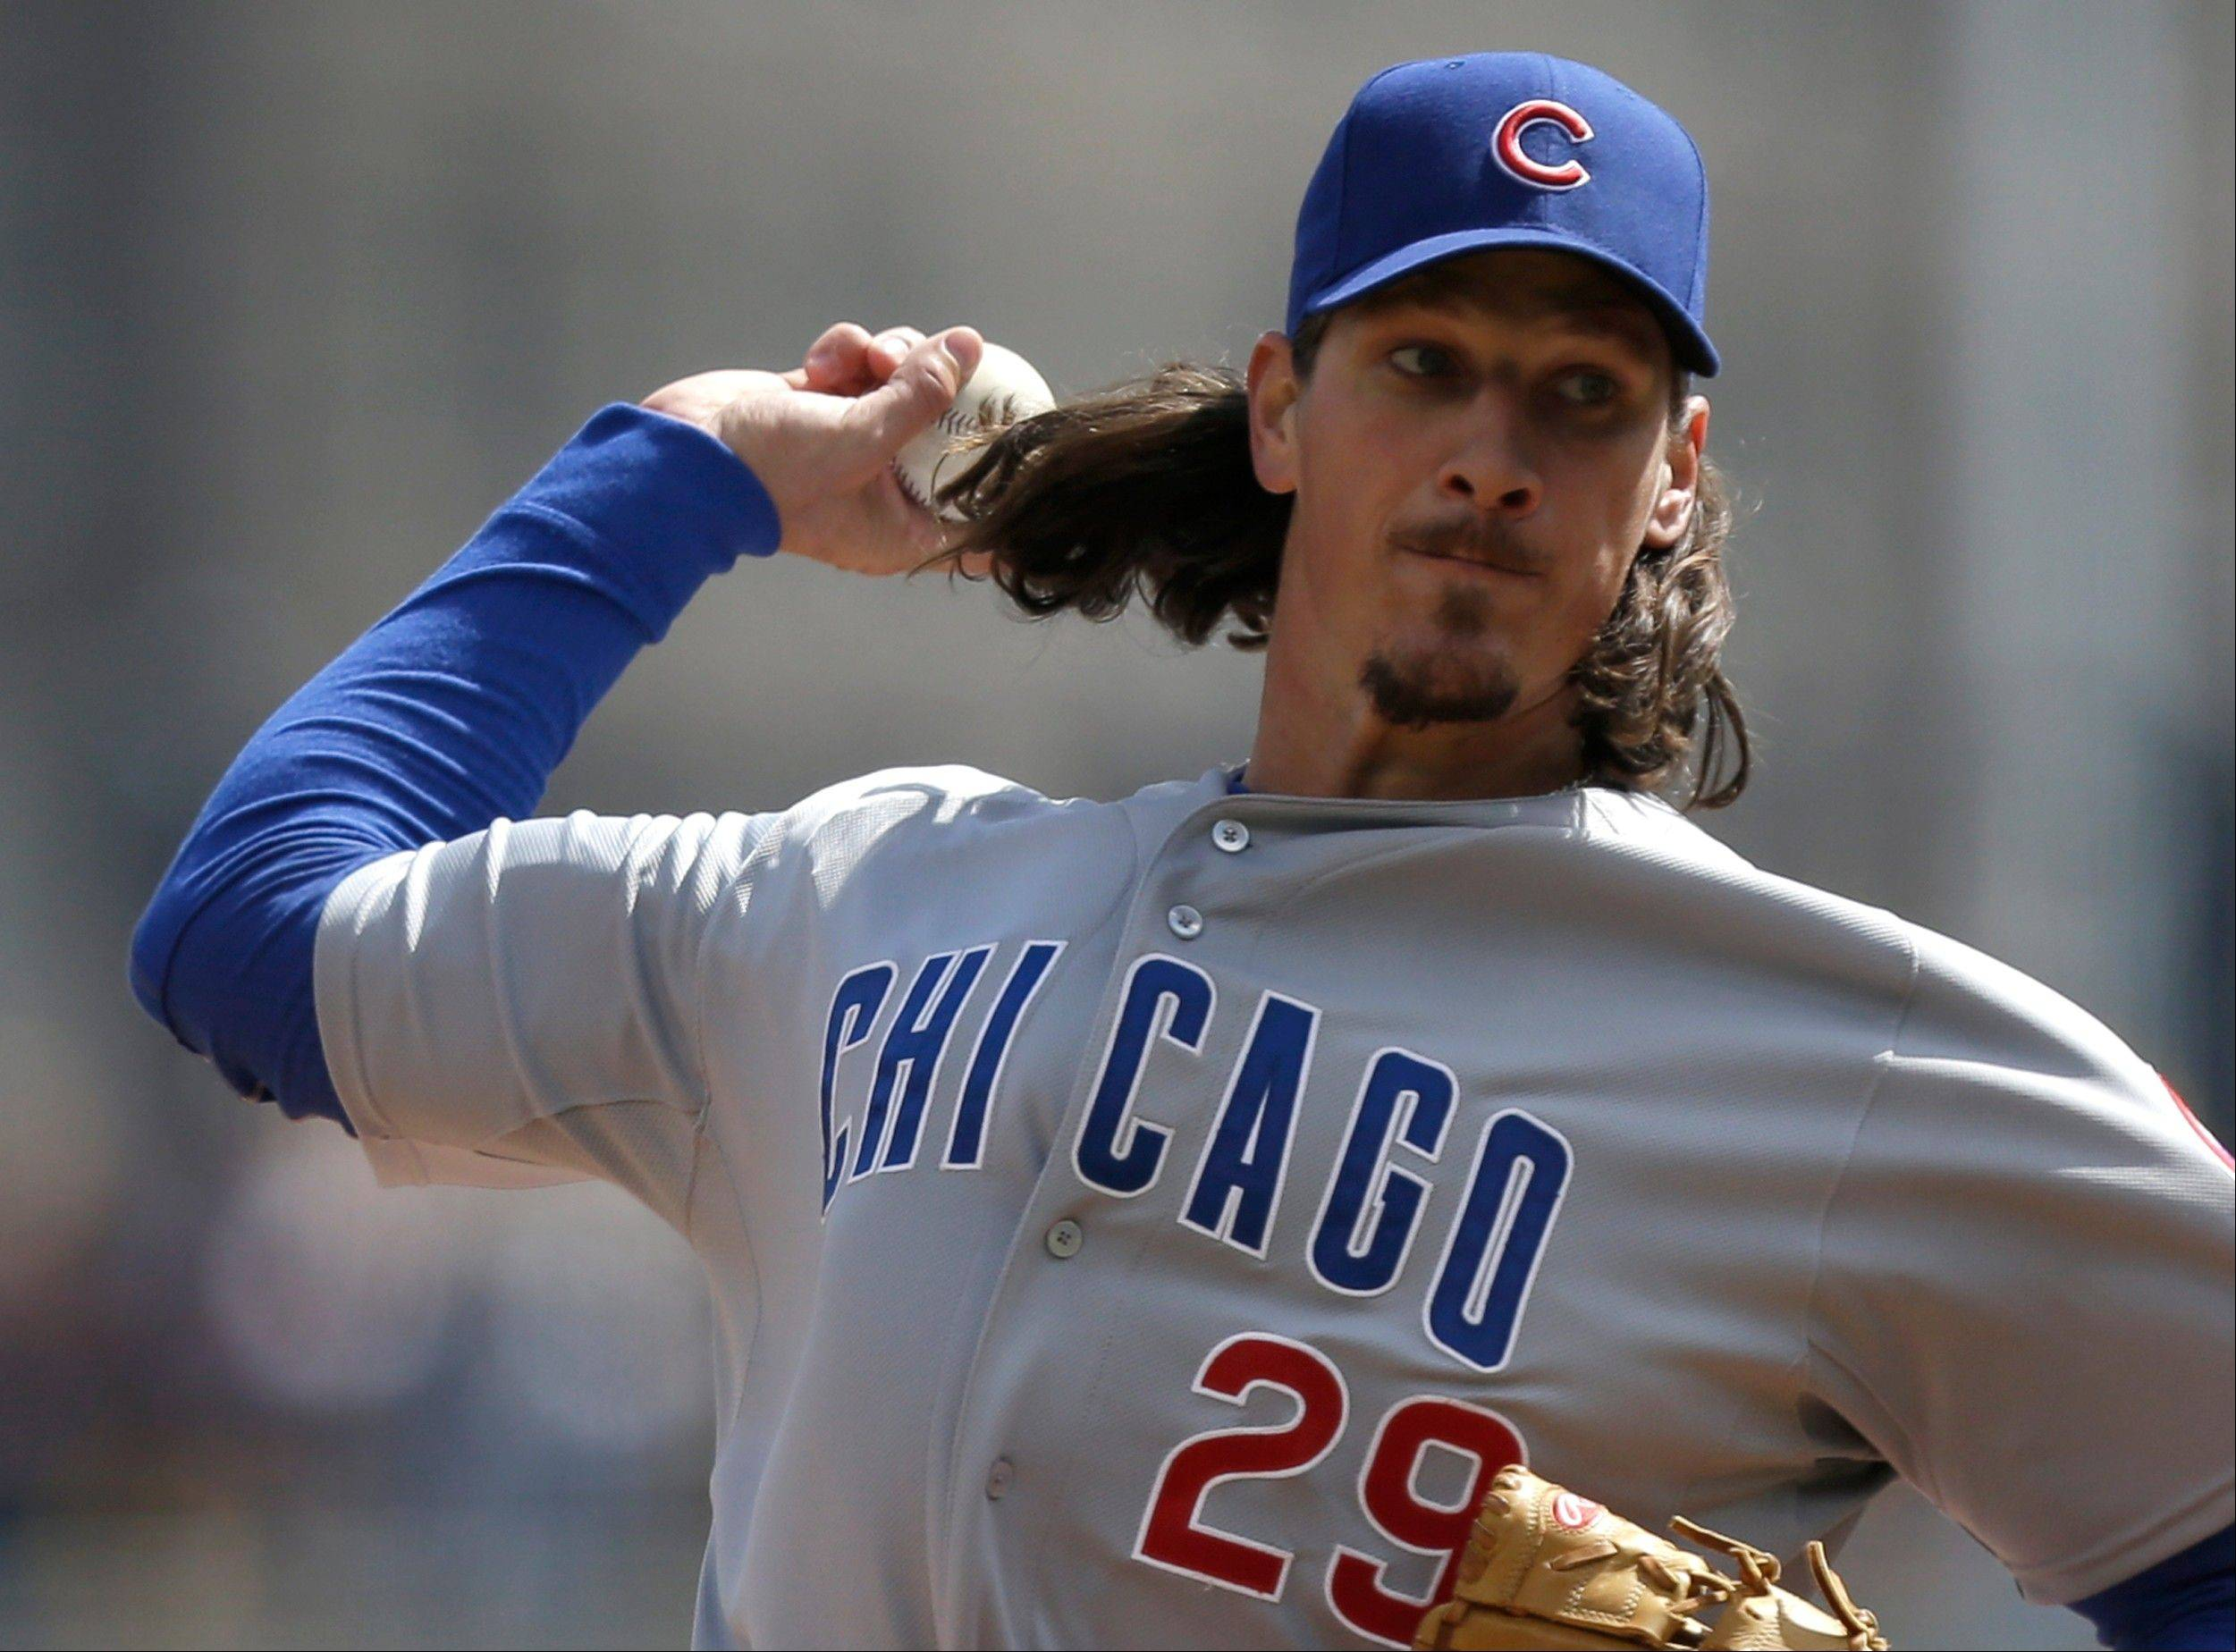 Cubs starting pitcher Jeff Samardzija worked 8 shutout innings, allowing only 2 hits, to pick up the victory Monday.